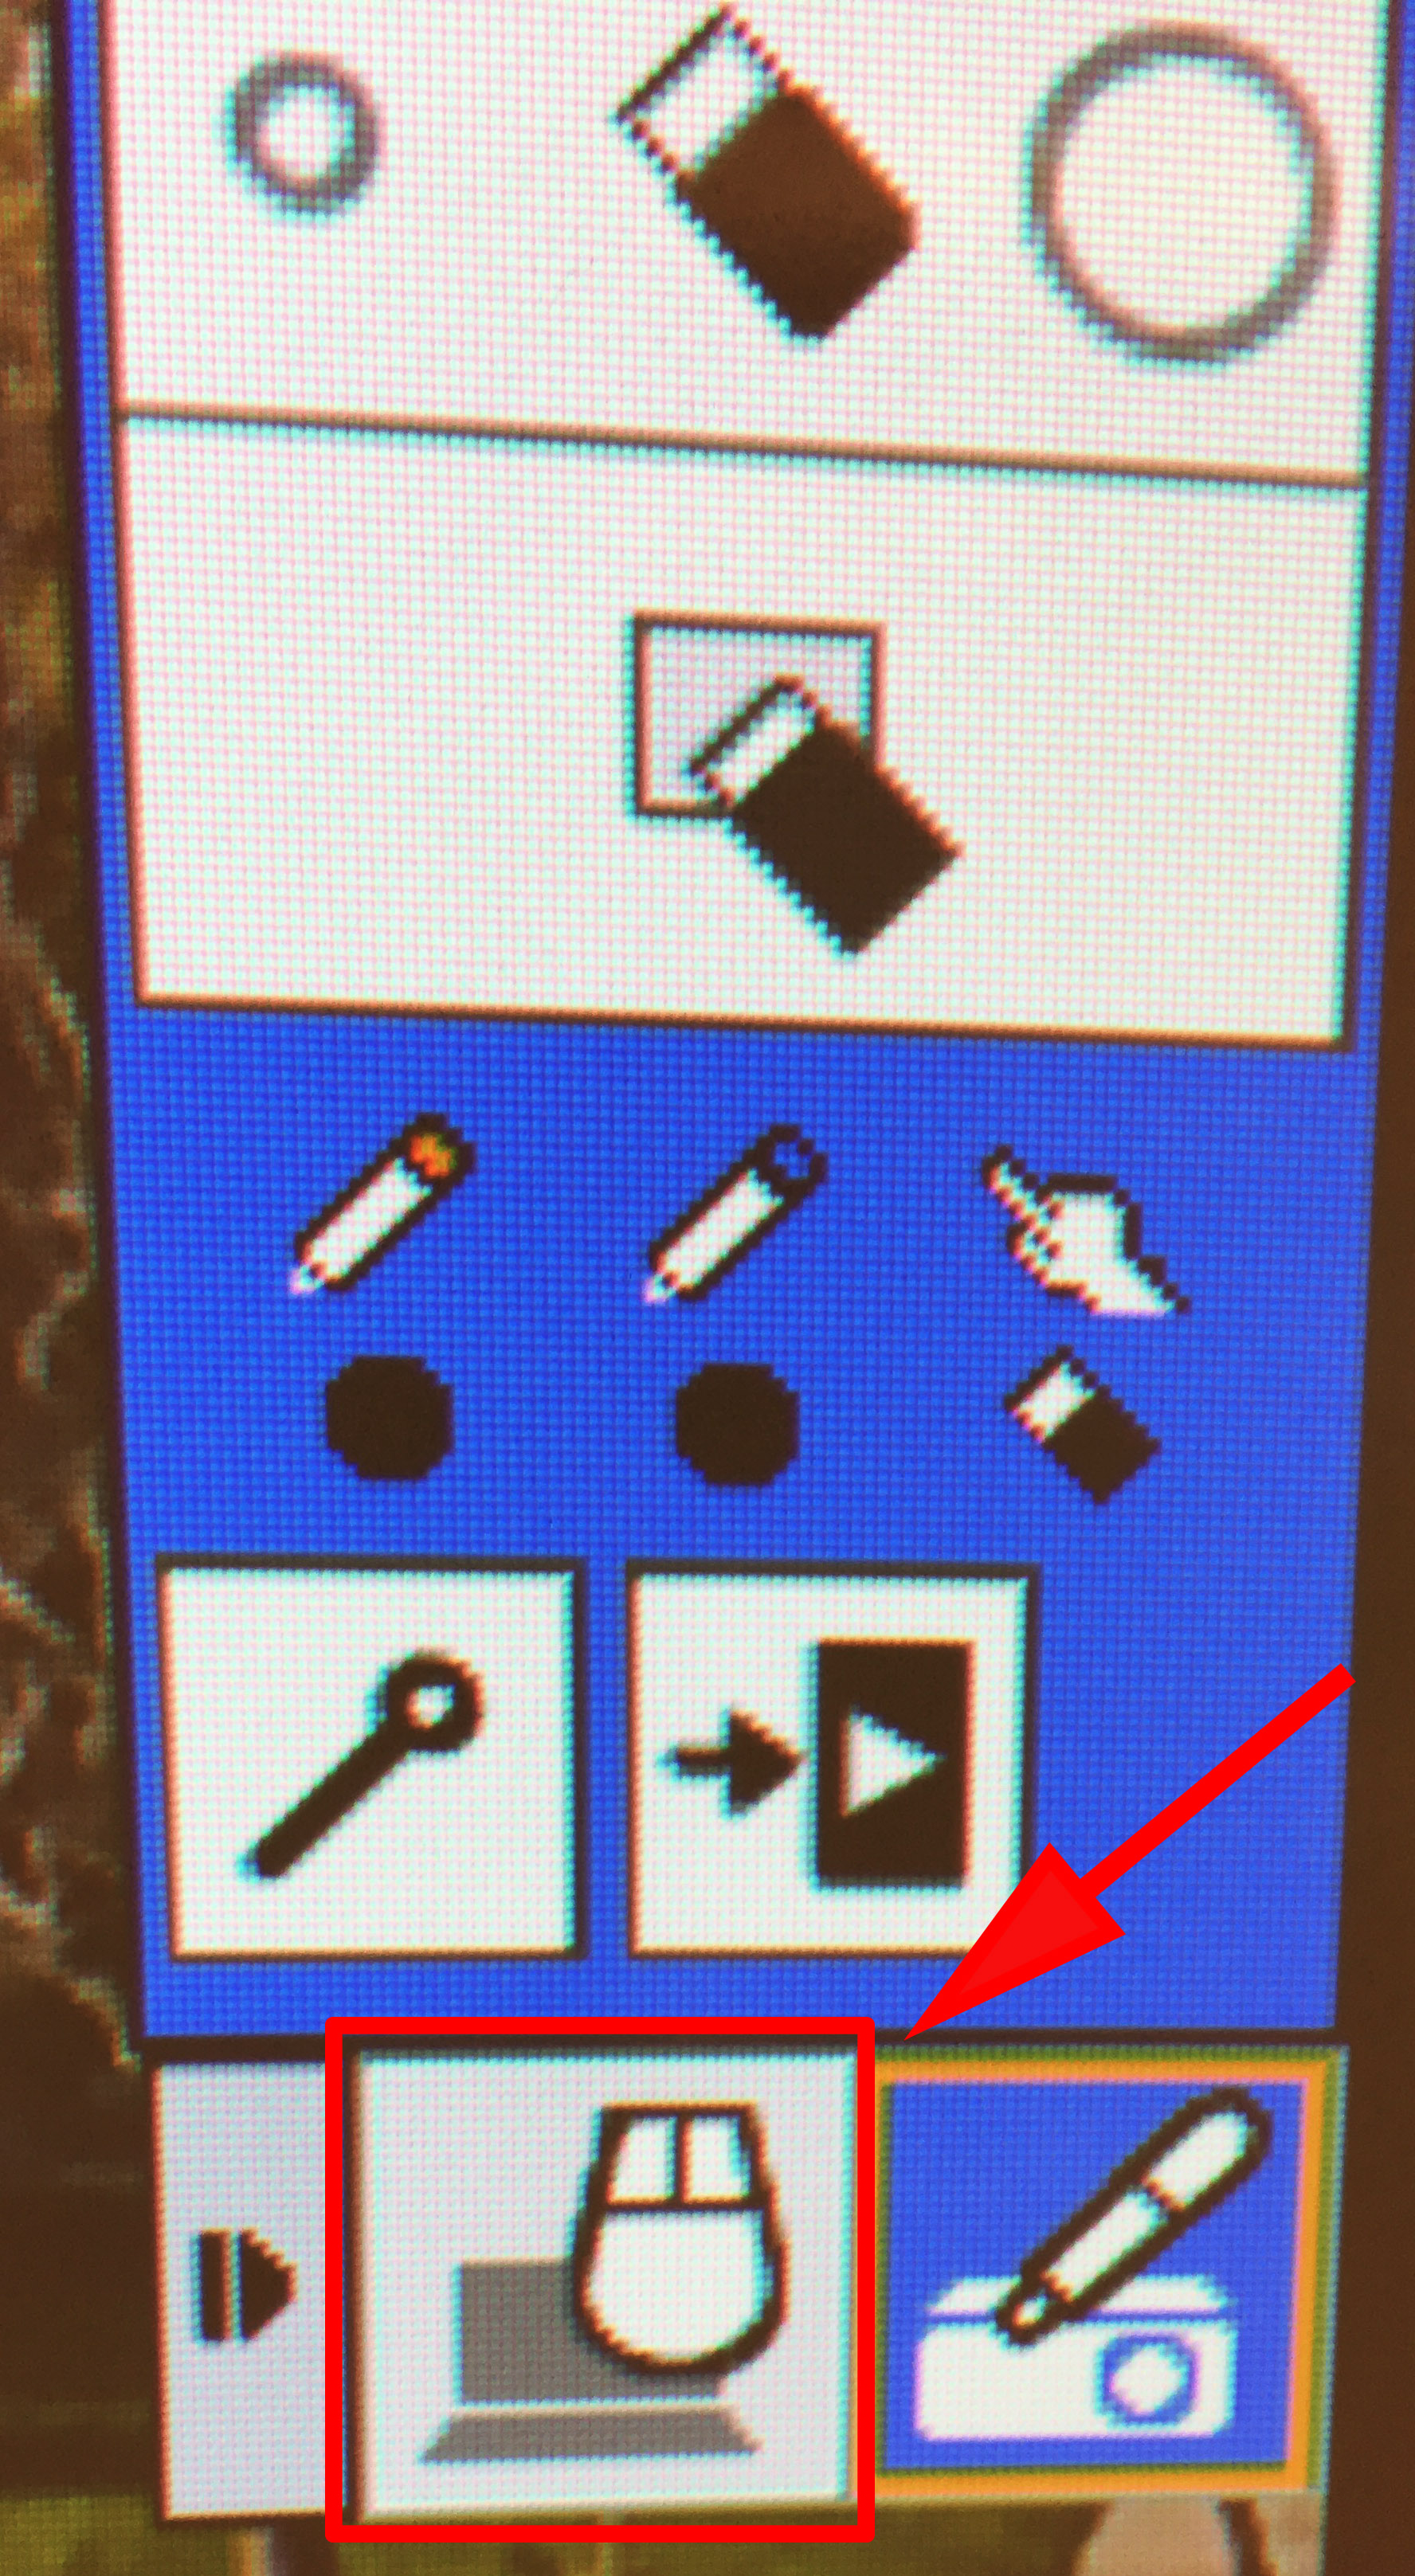 image of Easy Tools software toolbar with pen modes and PC Interactive mode indicated